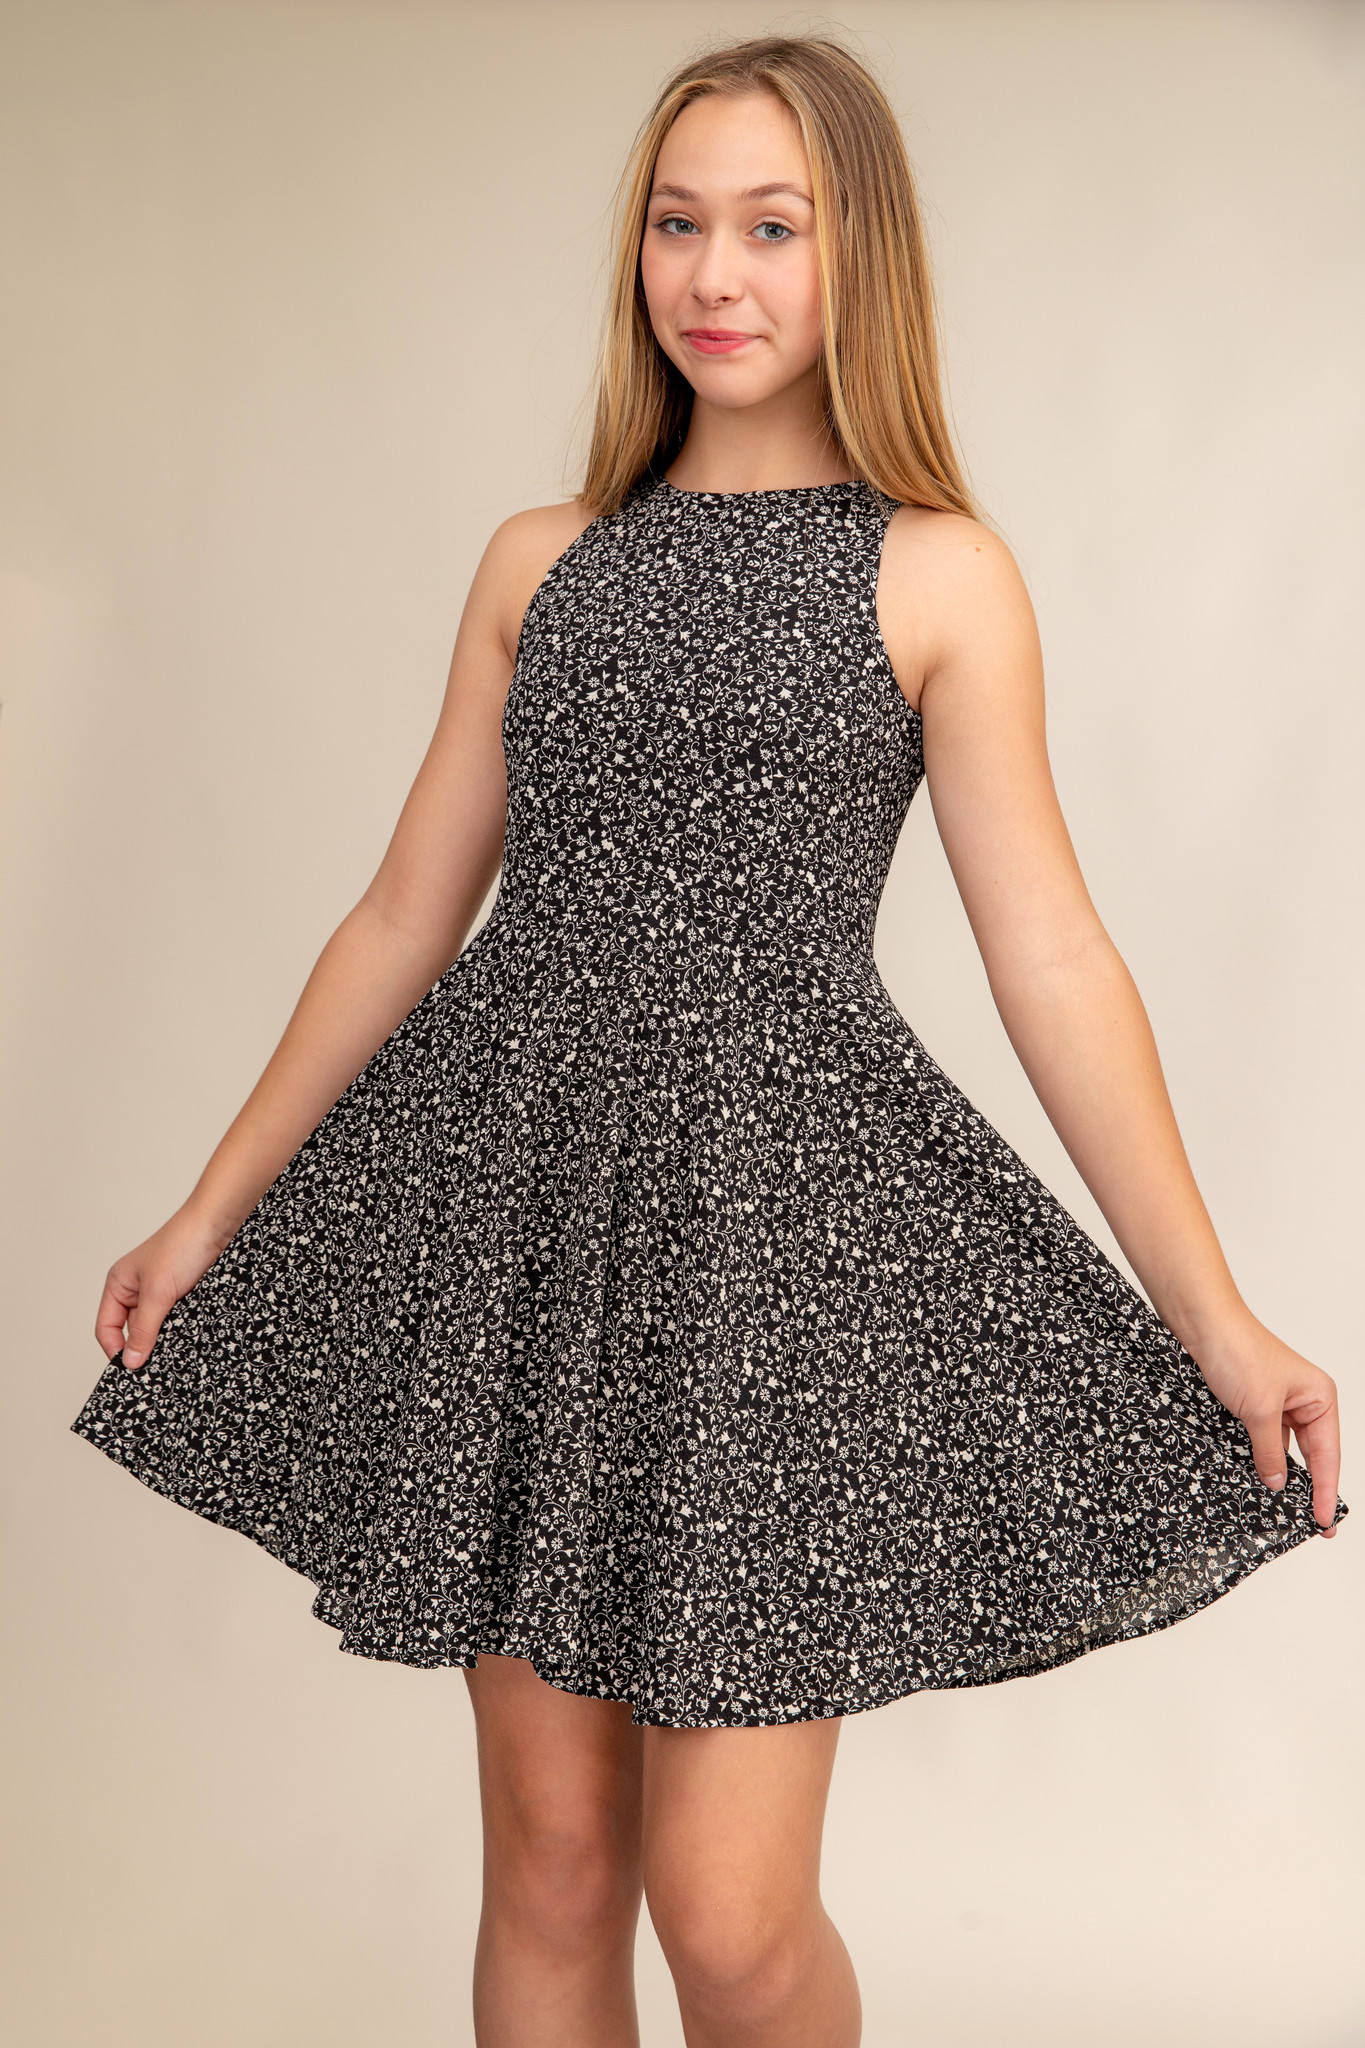 Black and White Floral Chiffon Racer Back Dress.